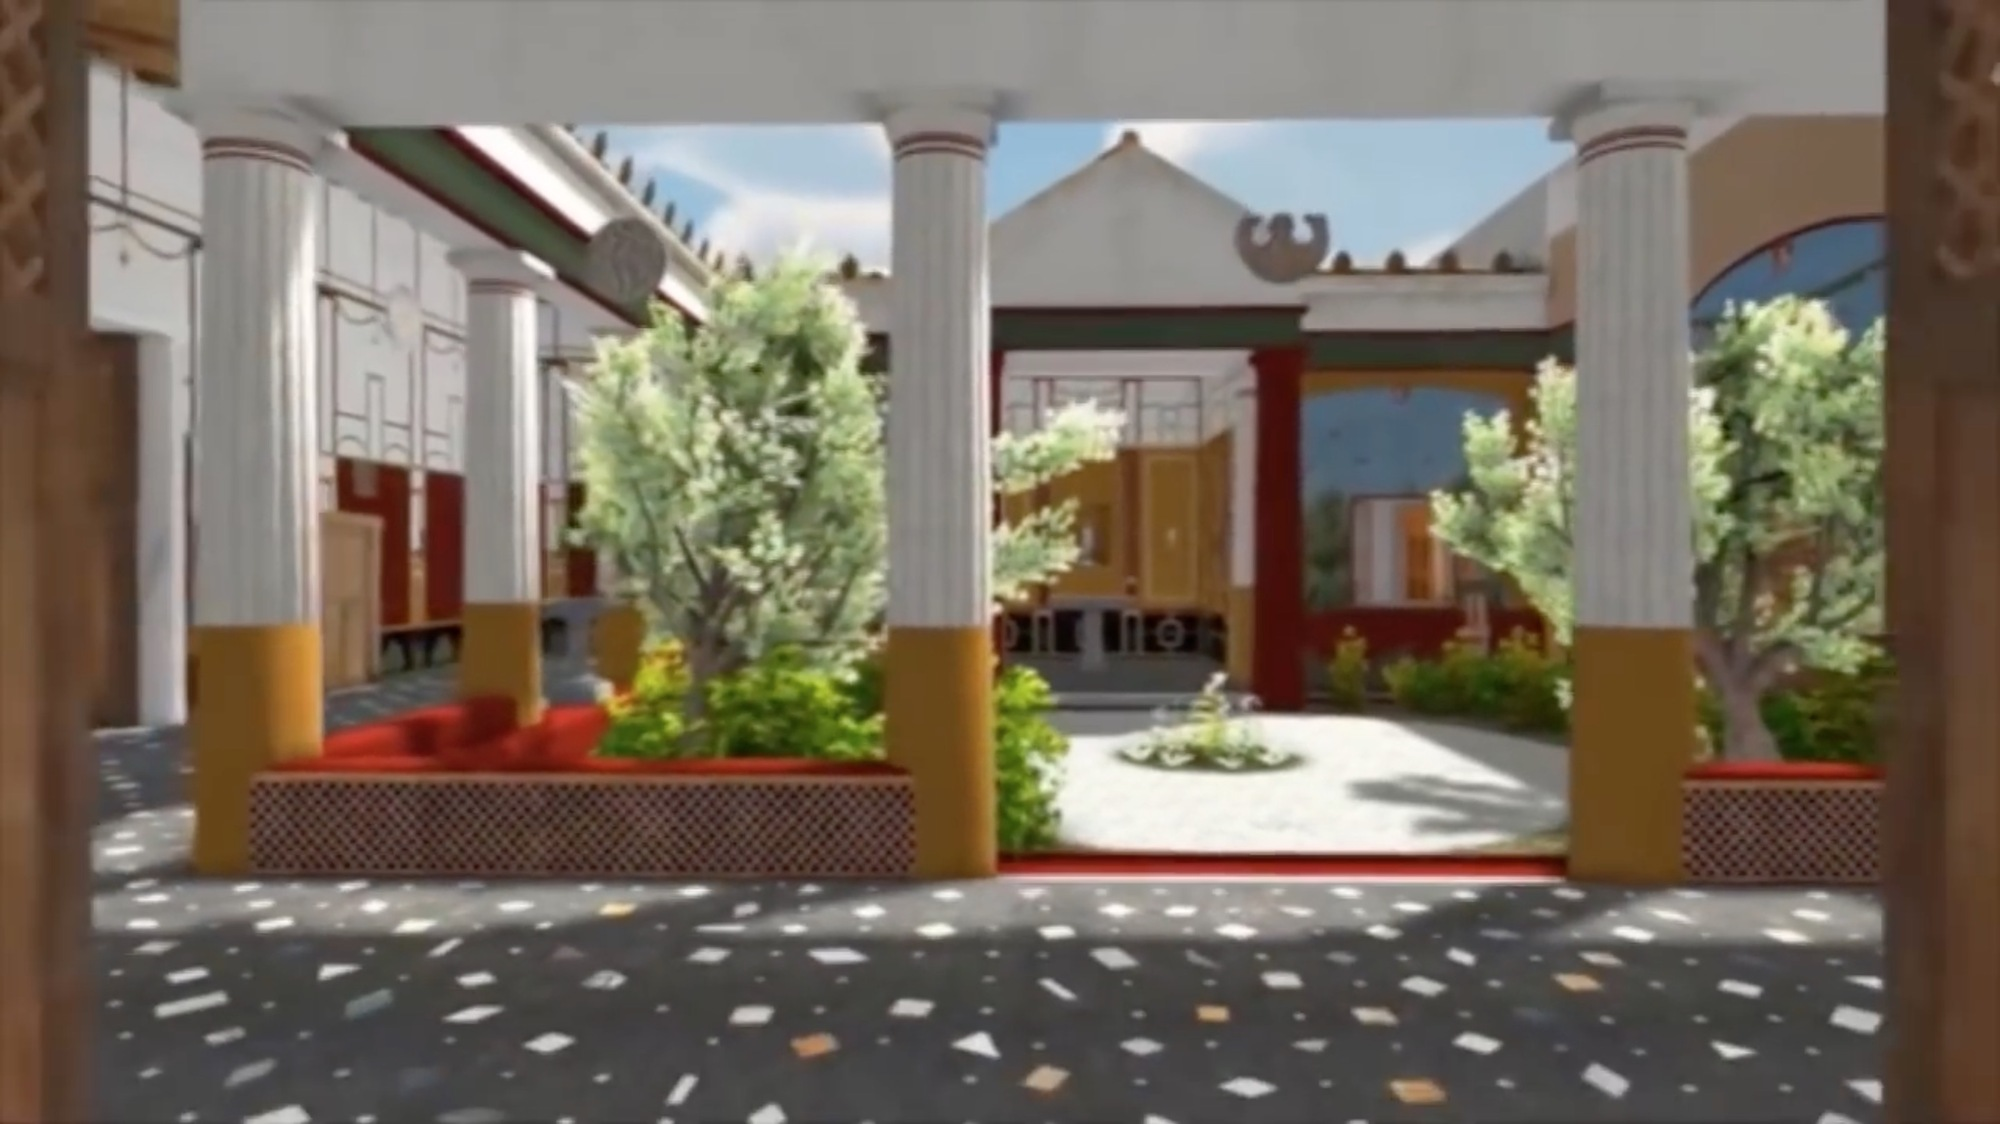 step into this digitally reconstructed house from ancient